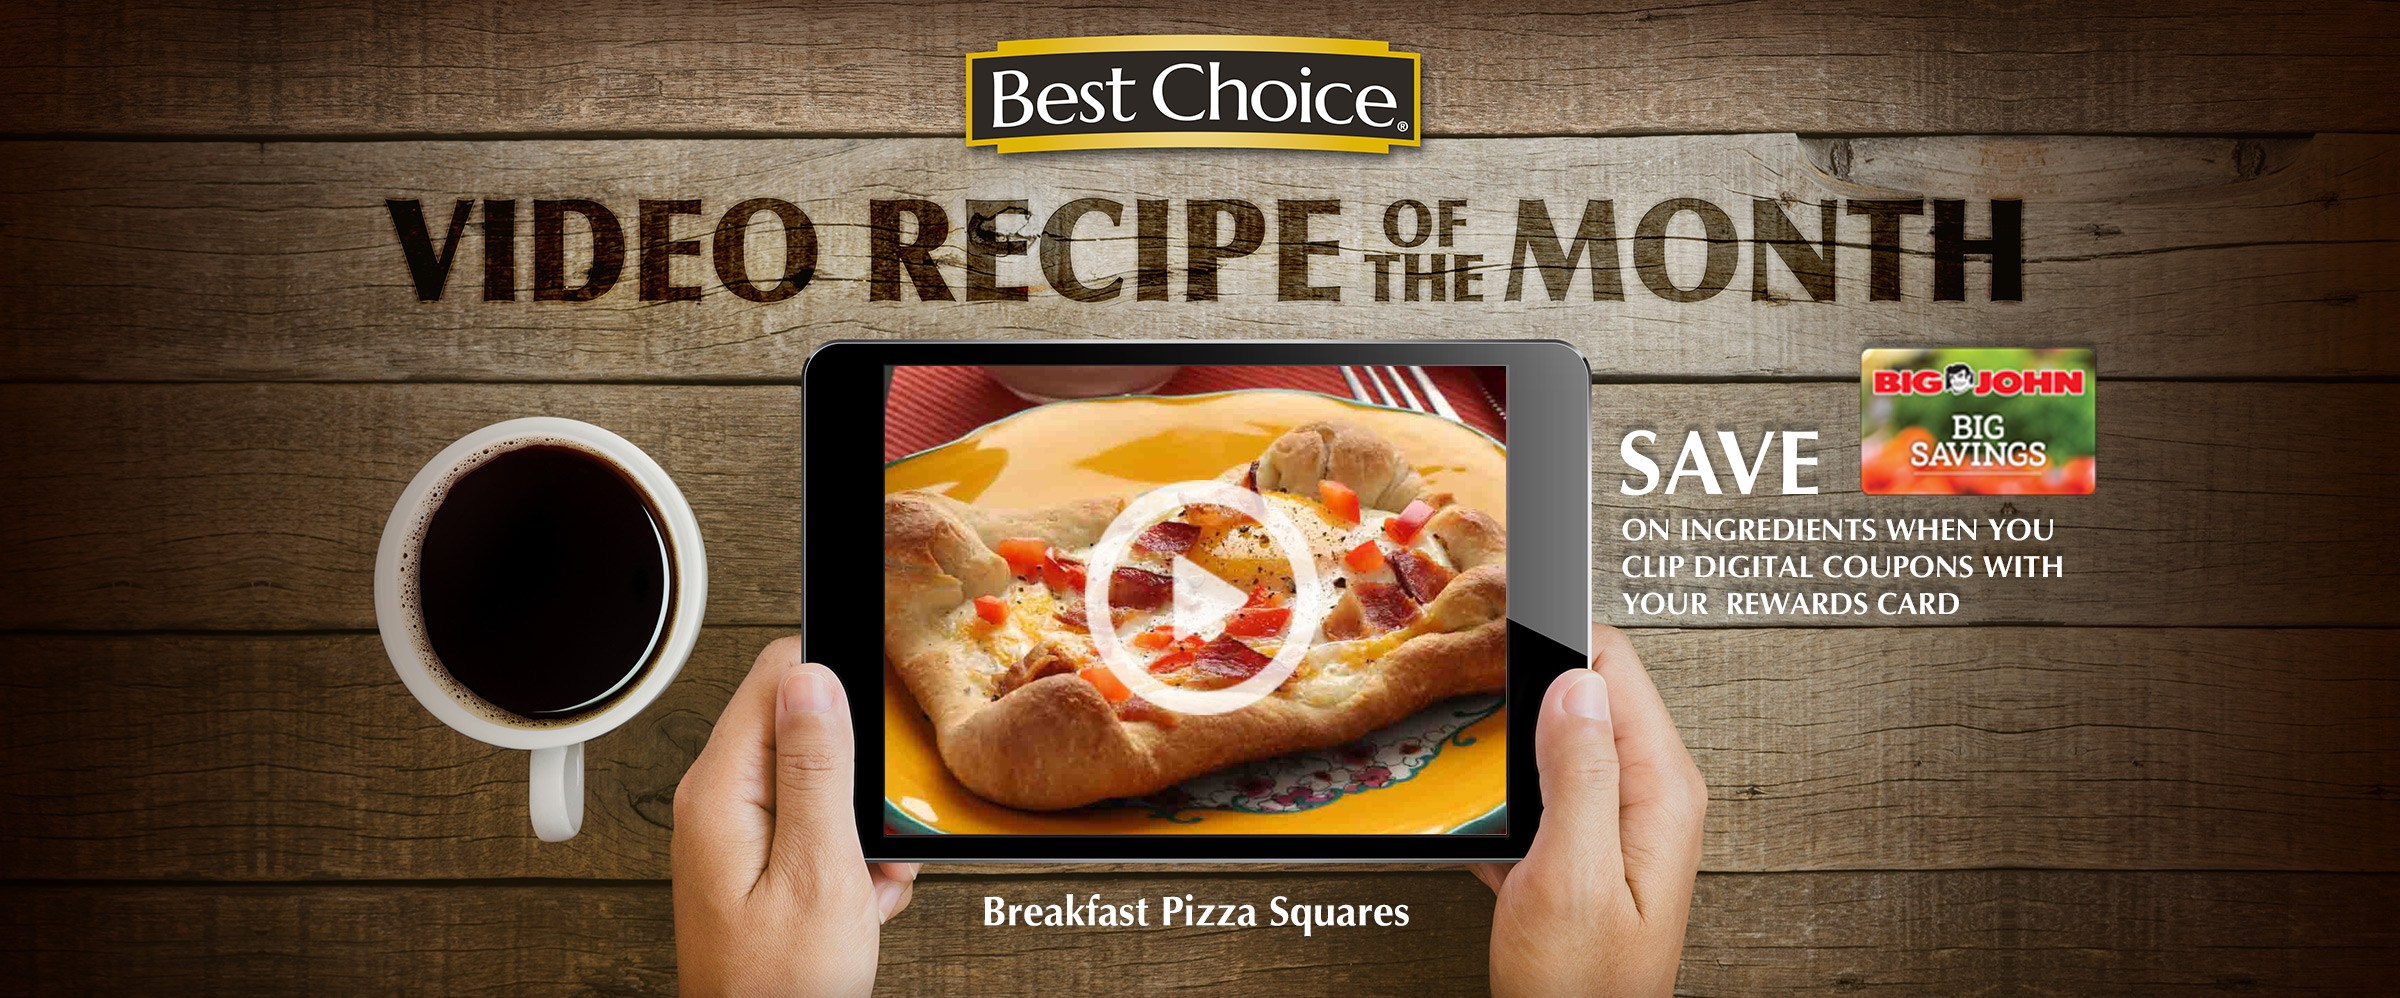 Recipe Video: Breakfast Pizza Squares. October is National Pizza Month! Freshly-baked pizza is just as delicious for breakfast as it is for dinner.